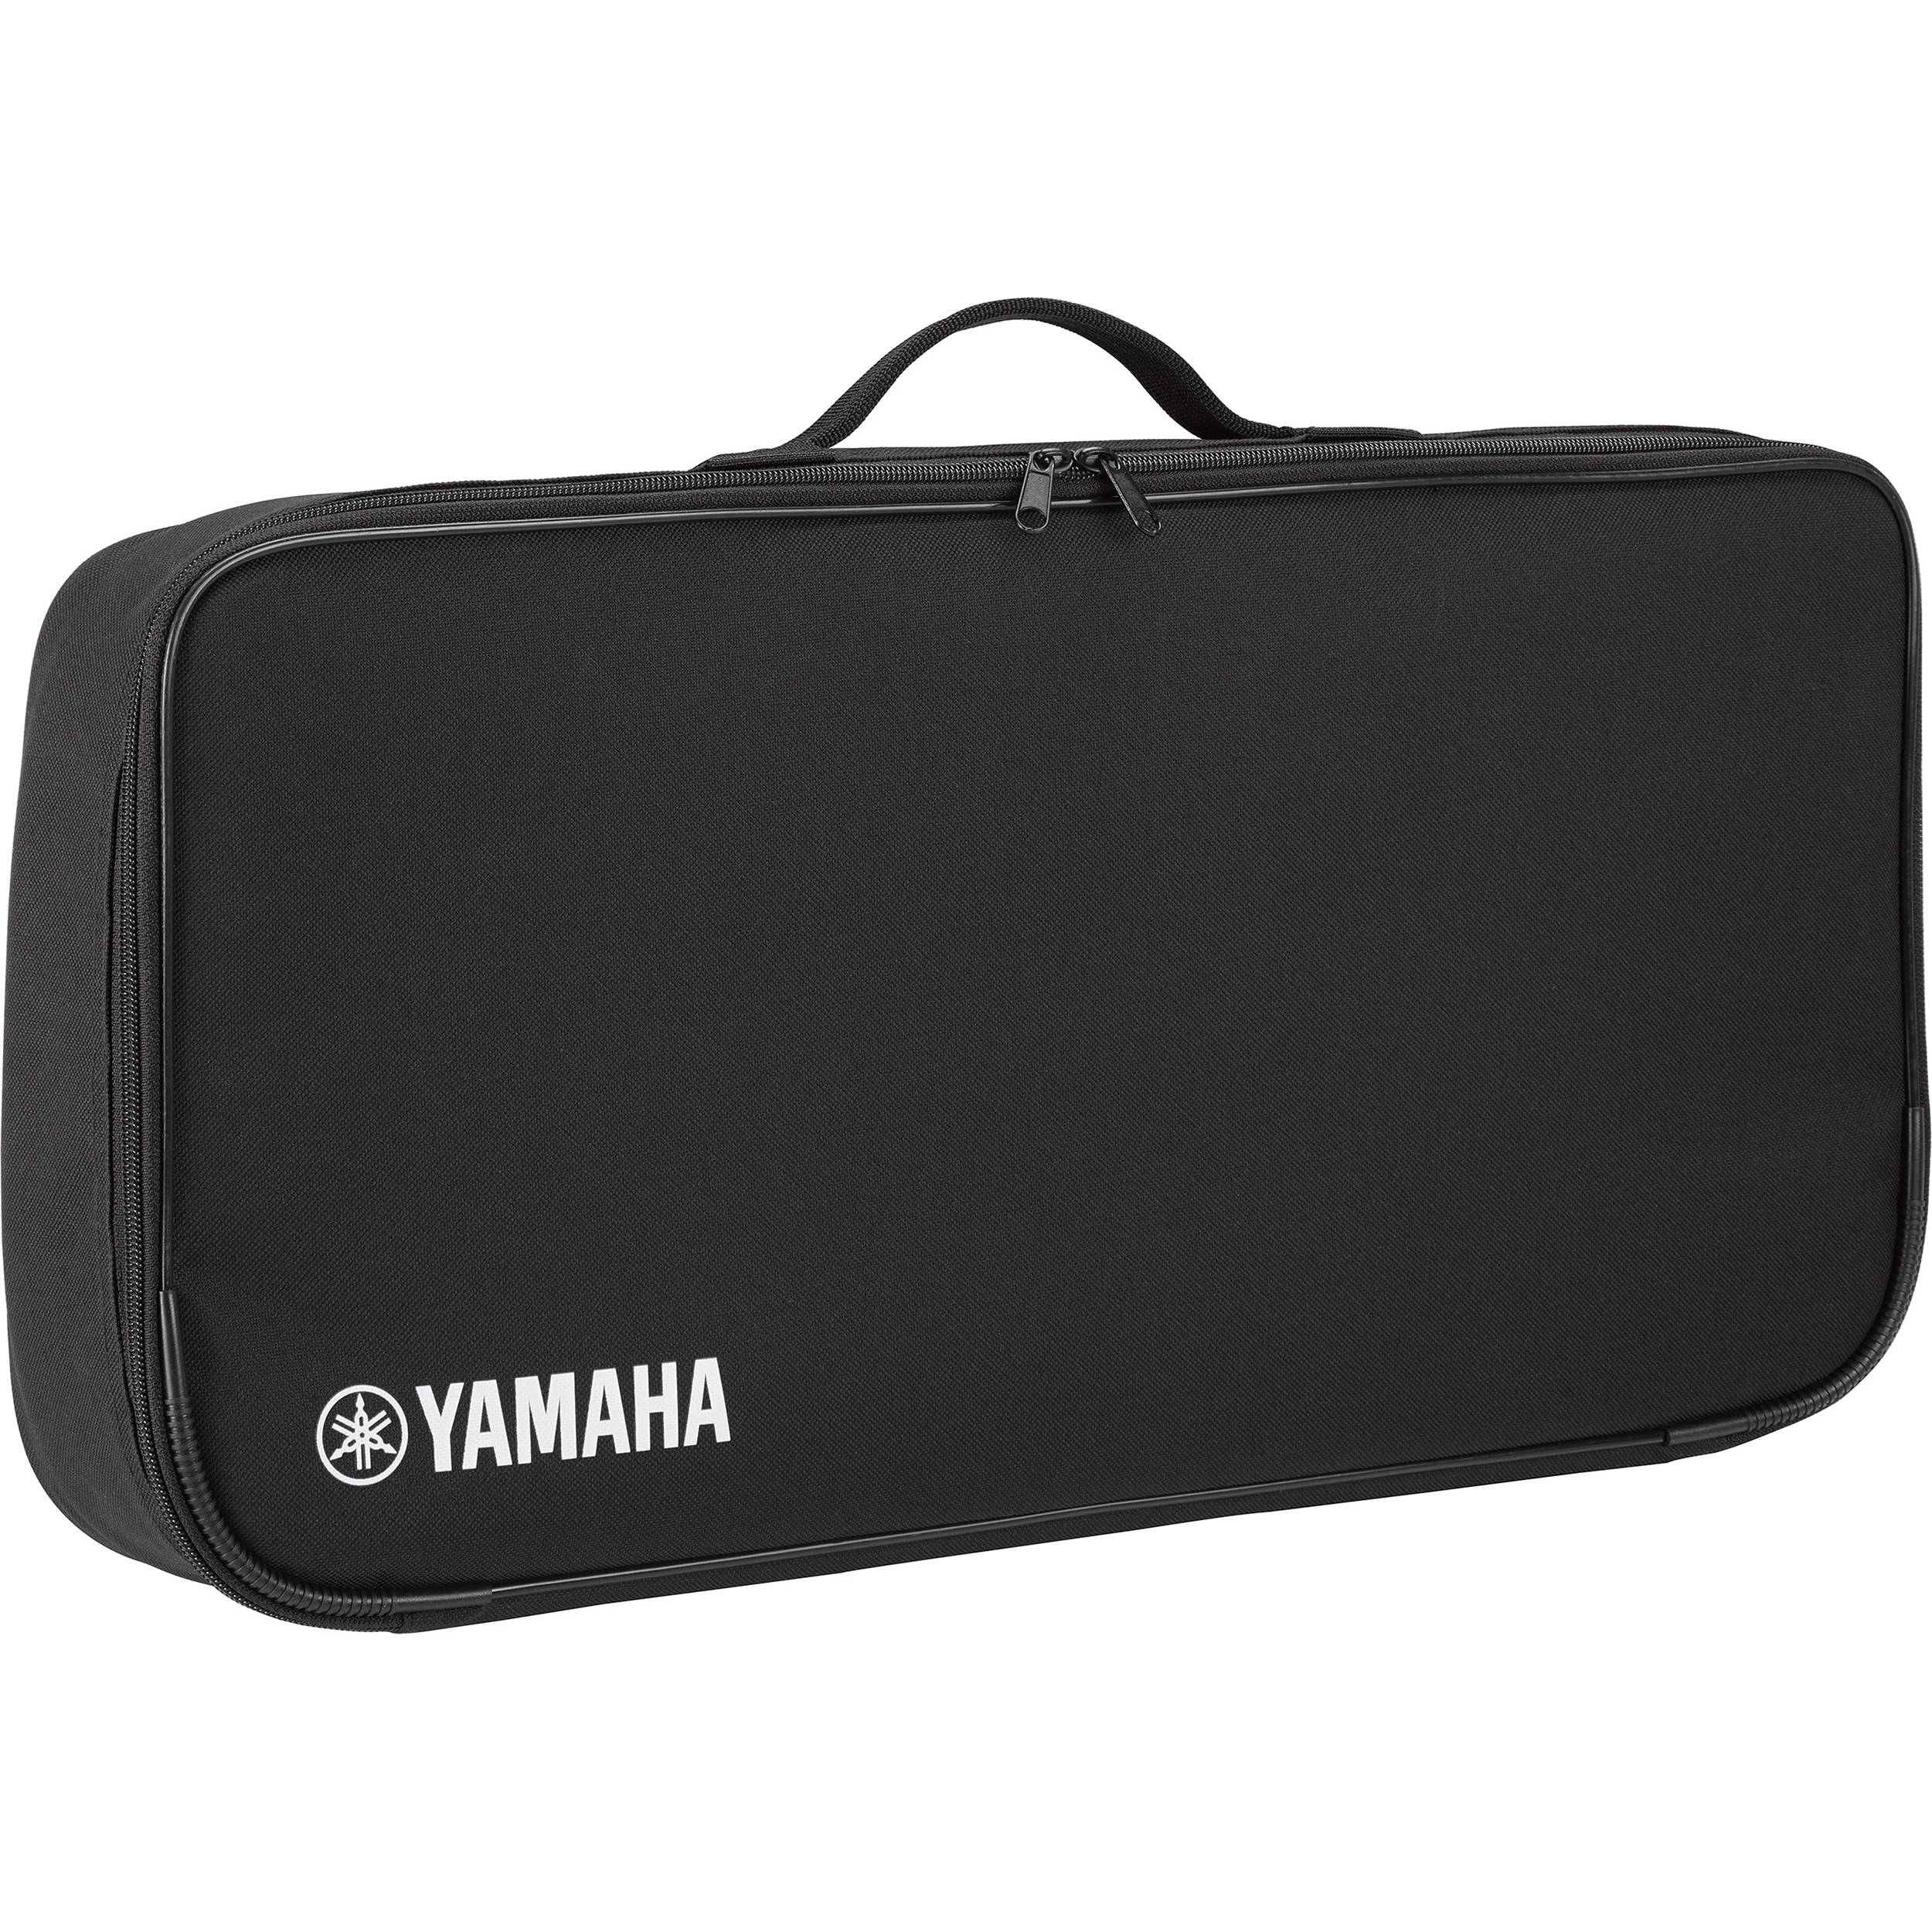 yamaha soft case for reface cs dx yc and cp keyboards. Black Bedroom Furniture Sets. Home Design Ideas